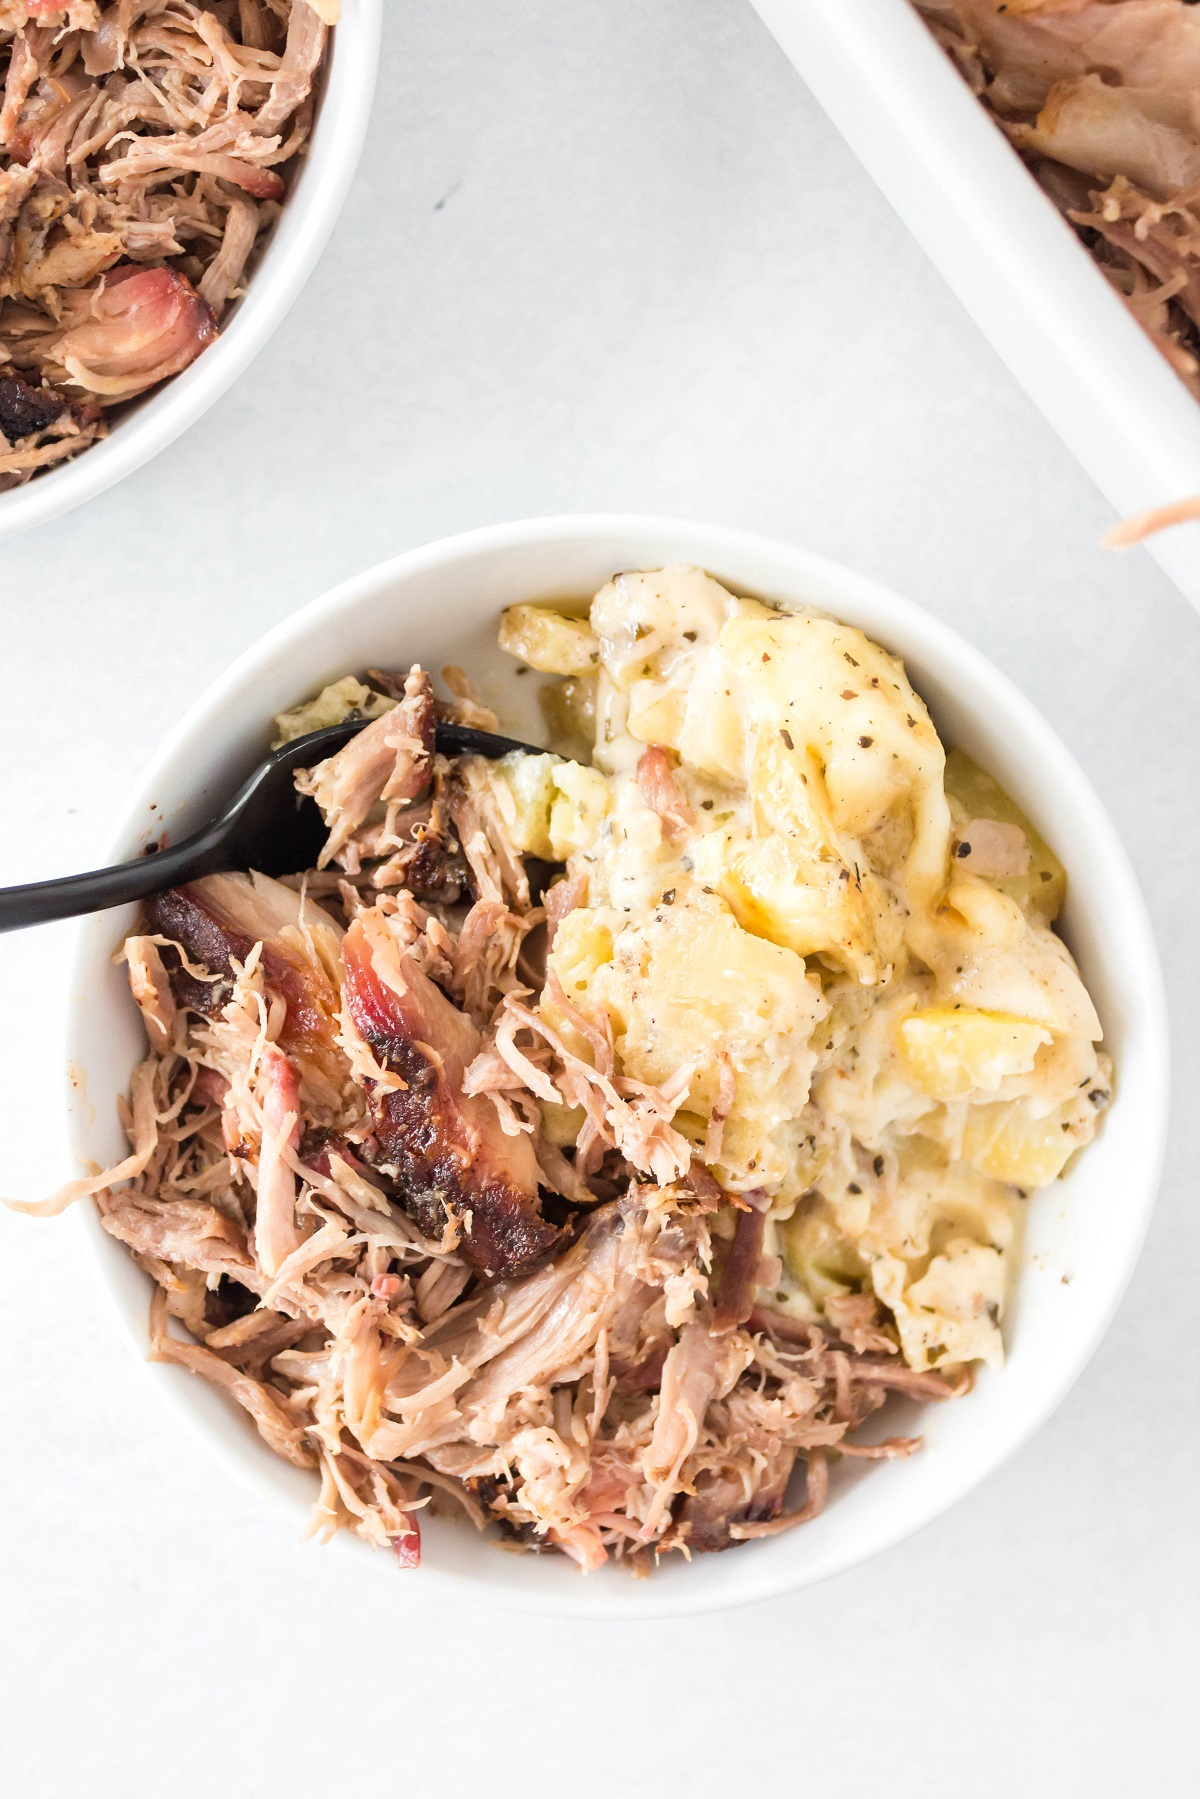 Pulled pork in a small white serving bowl with mashed potatoes.